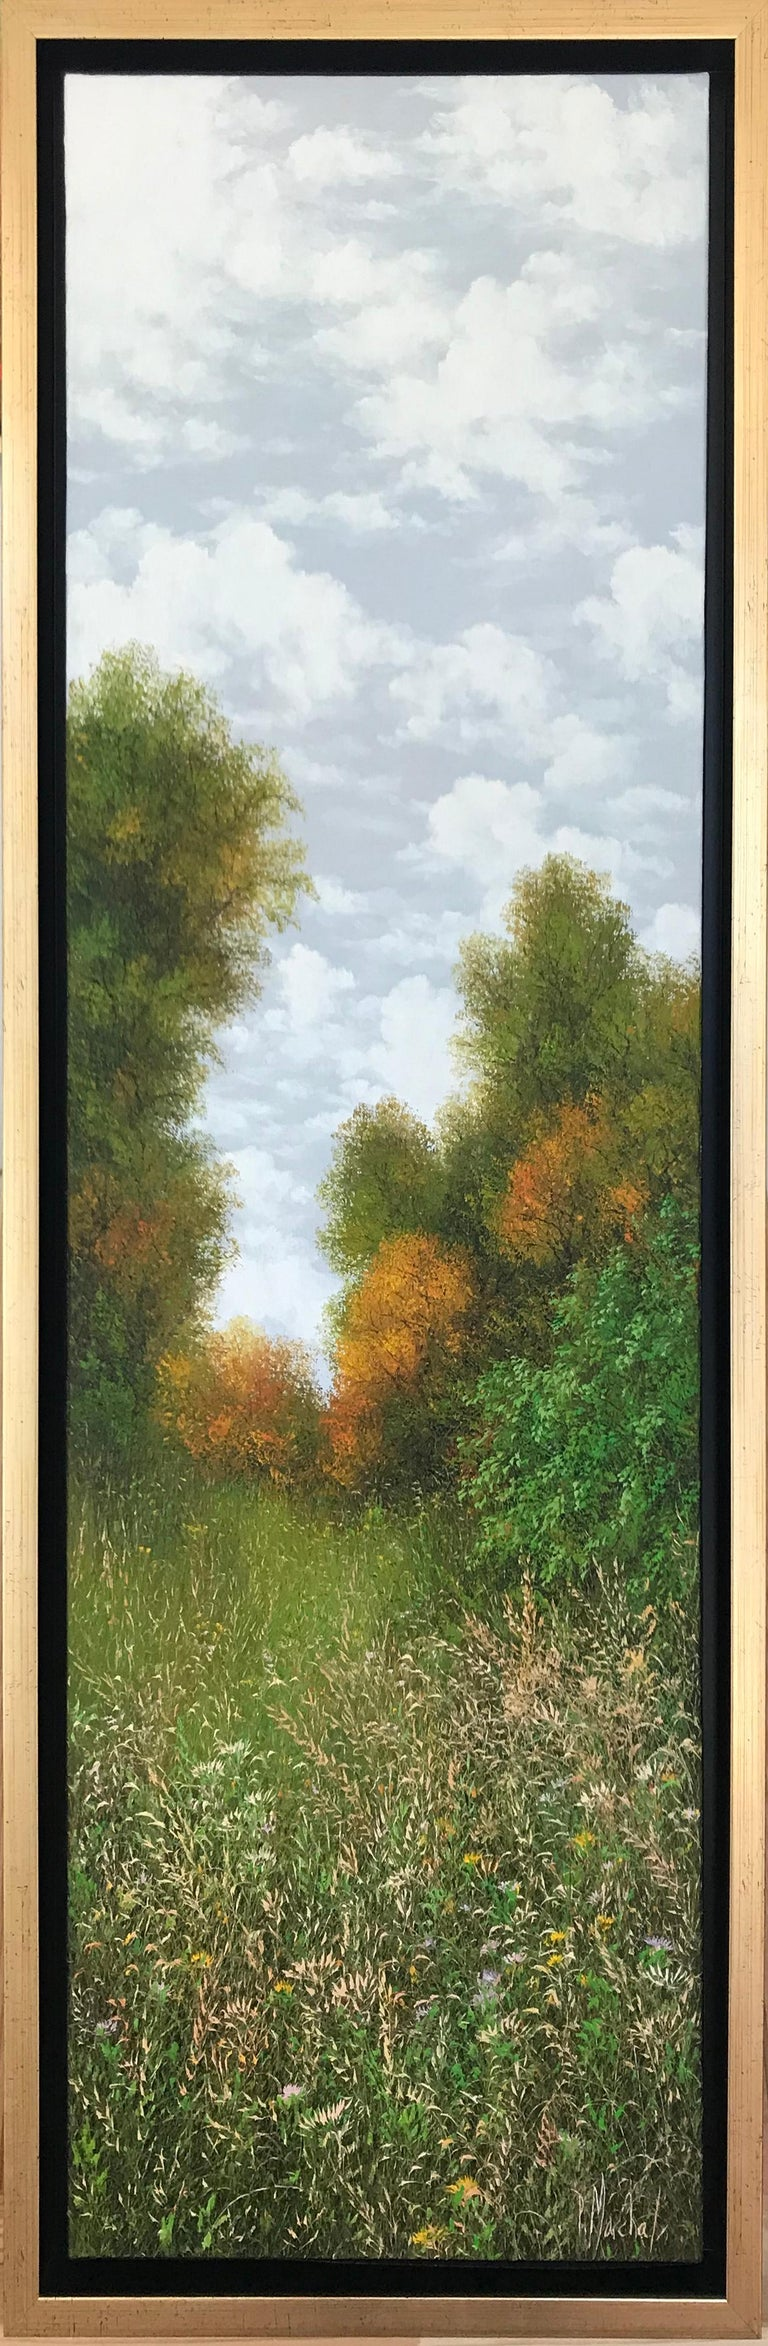 L'automne , oil painting on canvas , size with frame 95.4 x 35.4 cm , 2019 - Painting by Patrice Marchal